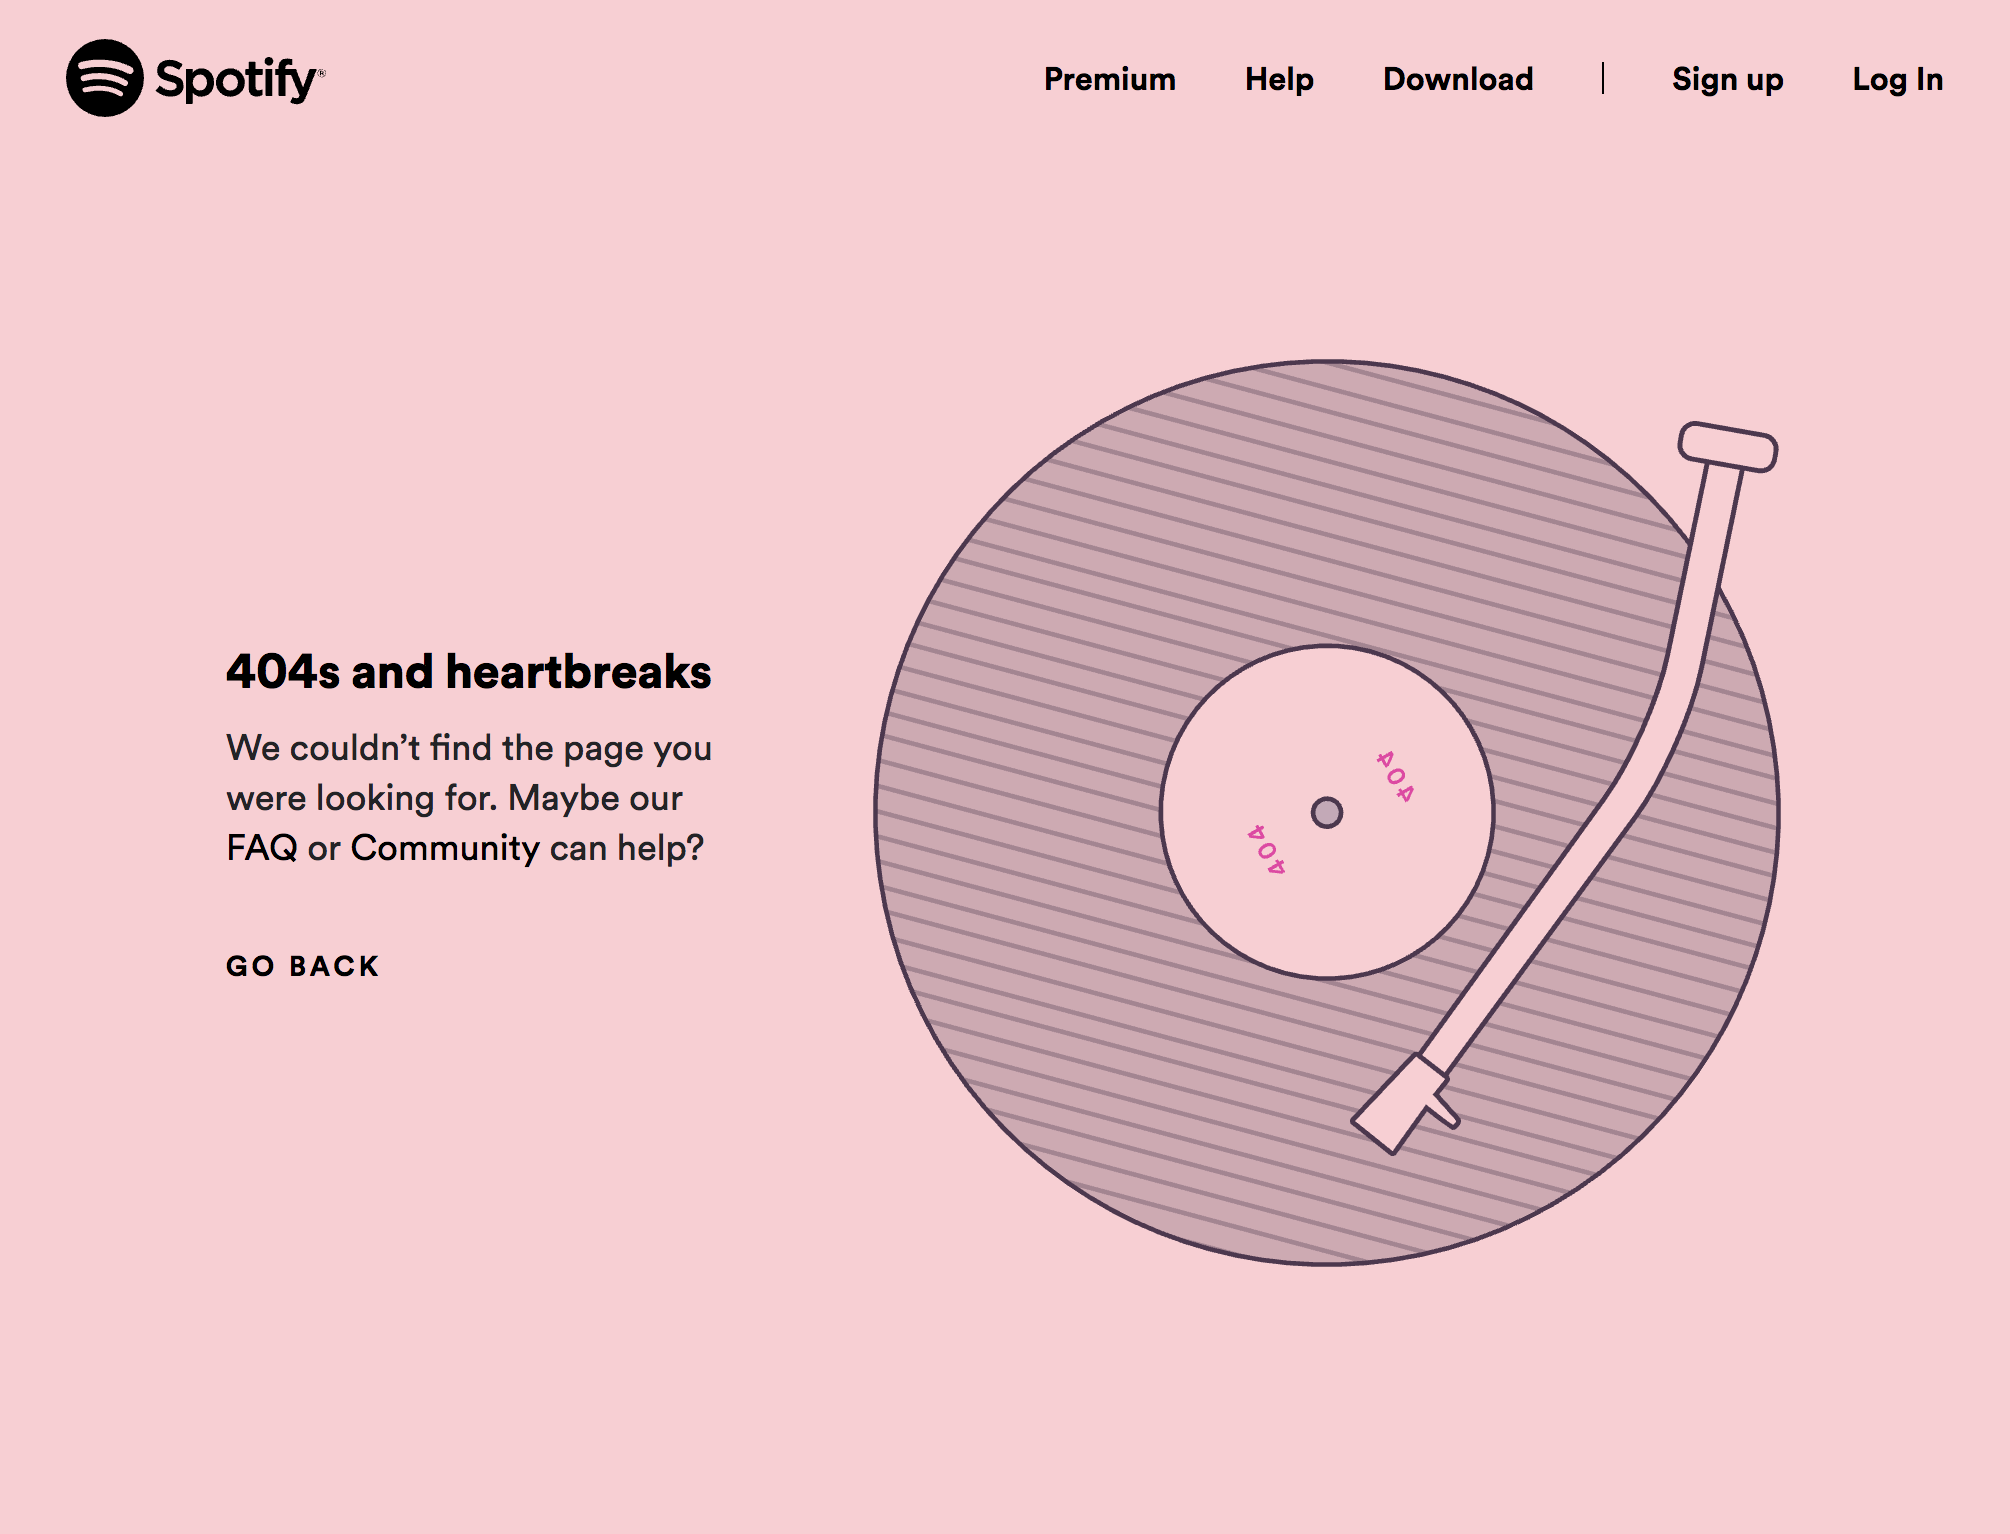 Spotify 404 error page